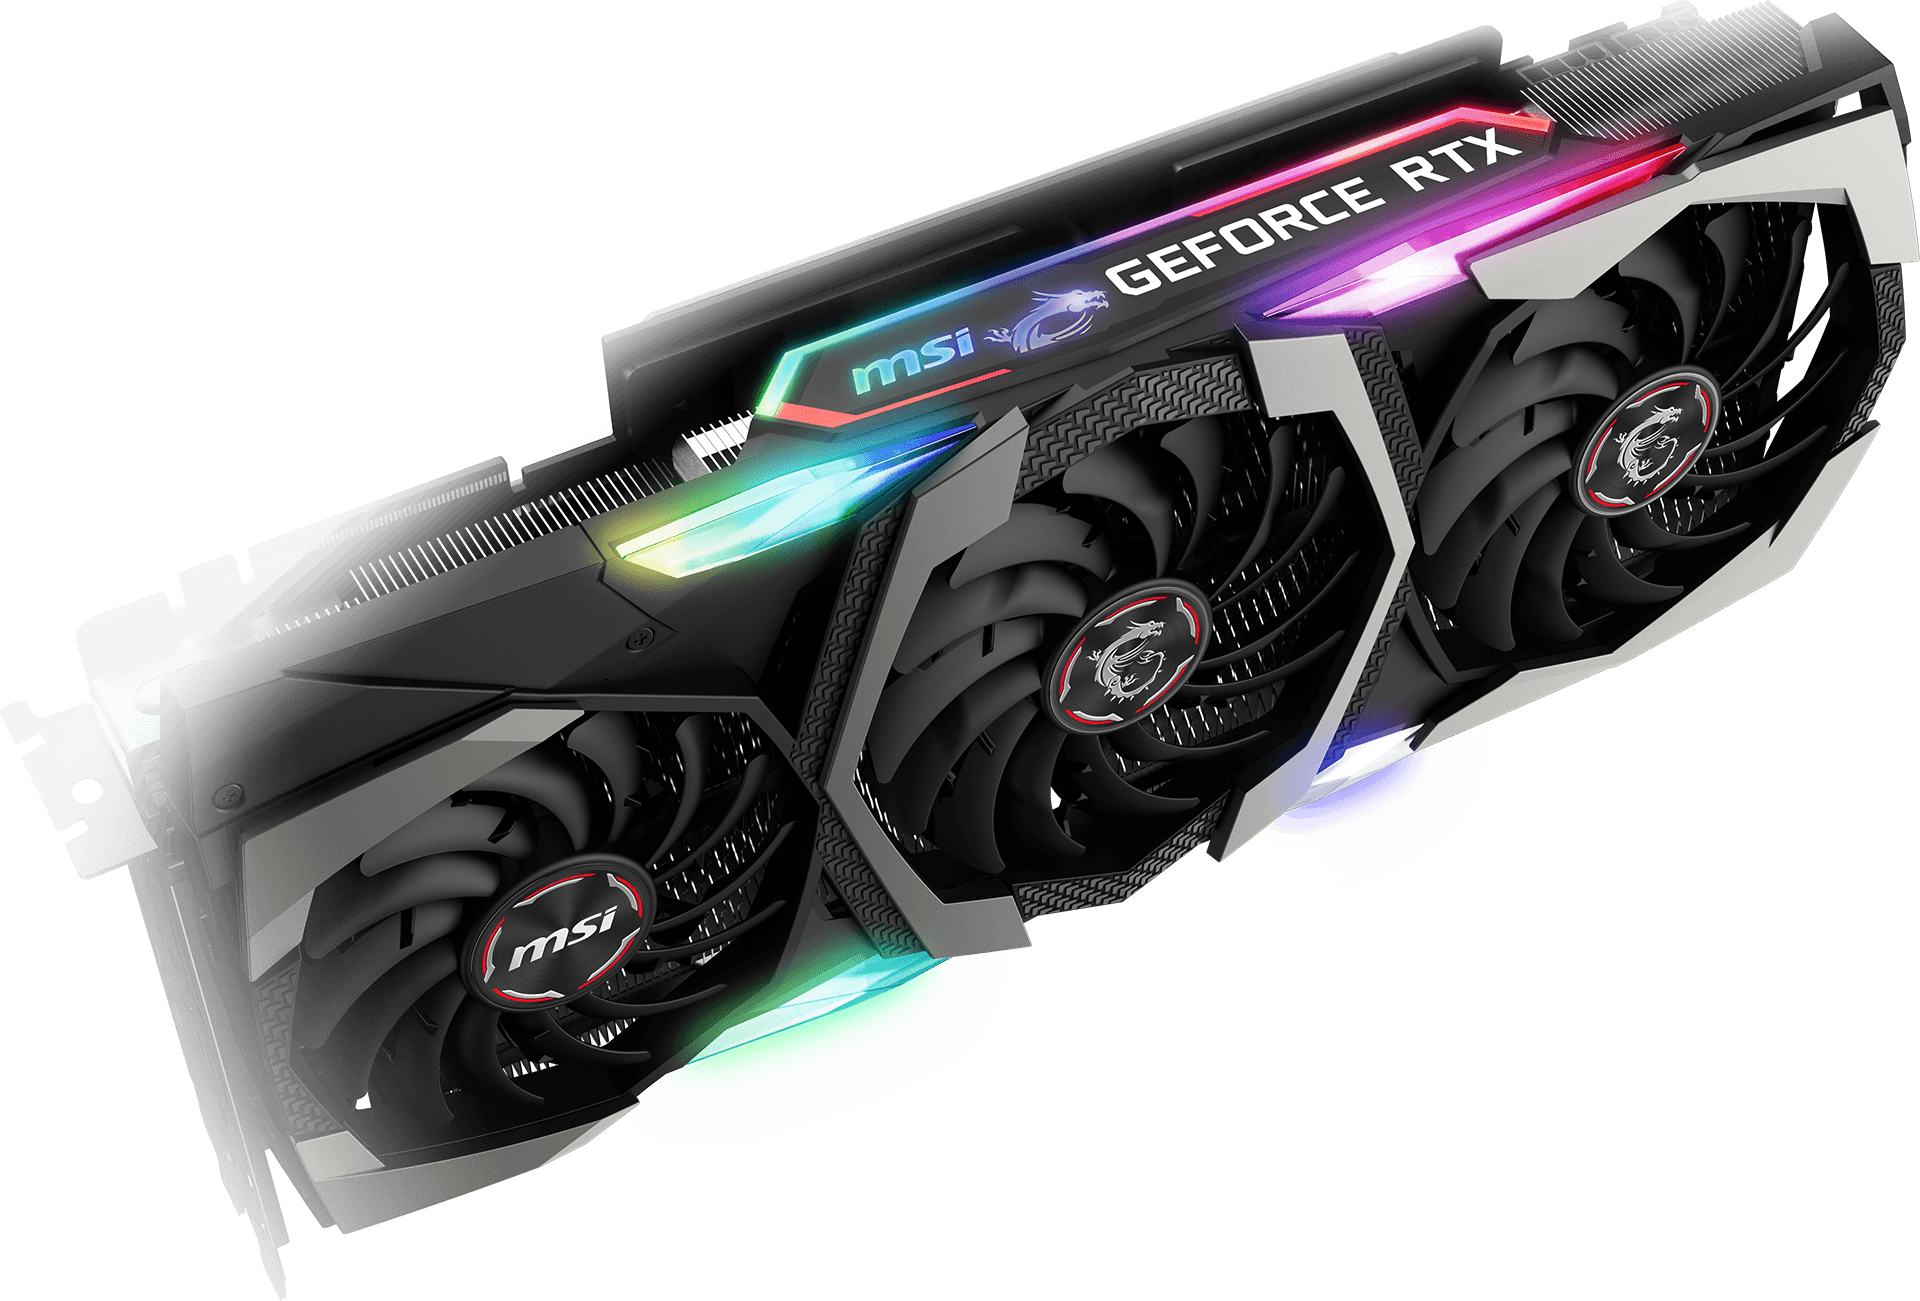 MSI RTX 2080 Super Gaming X TRIO Graphics Card Angled Down to the Right